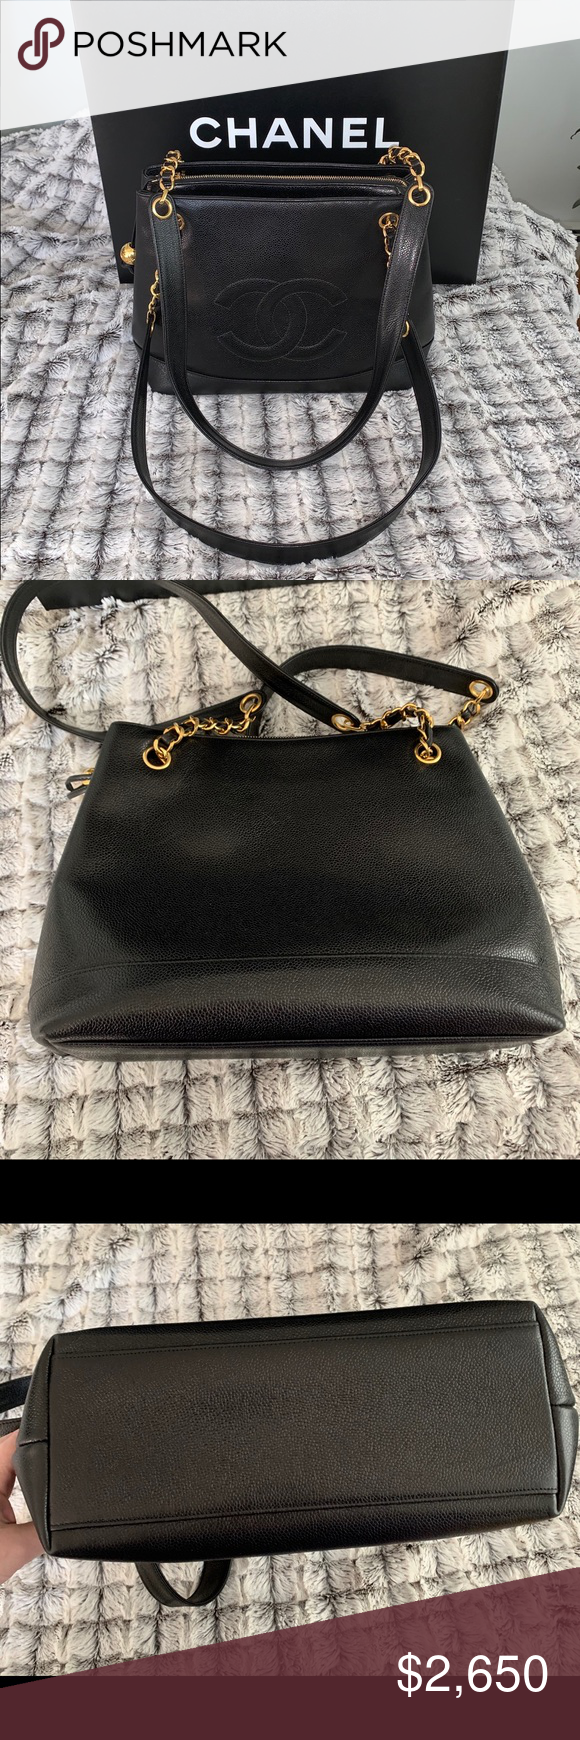 **HP**Chanel Black Leather Caviar Bag This Chanel Bag is in black caviar leather. Features caviar leather with gold tone hardware. THREE separate compartments. The middle compartment has a zippered top for privacy! The two side compartments are open for easier access BUT VERY safe!! Side zippers on both inner sides with Chanel closures. IN MINT CONDITION - WAS ONLY USED A FEW TIMES!!! LIKE BRAND NEW!! PLEASE serious inquiries only. PRICE IS FIRM! Please see pictures. This bag has been kep